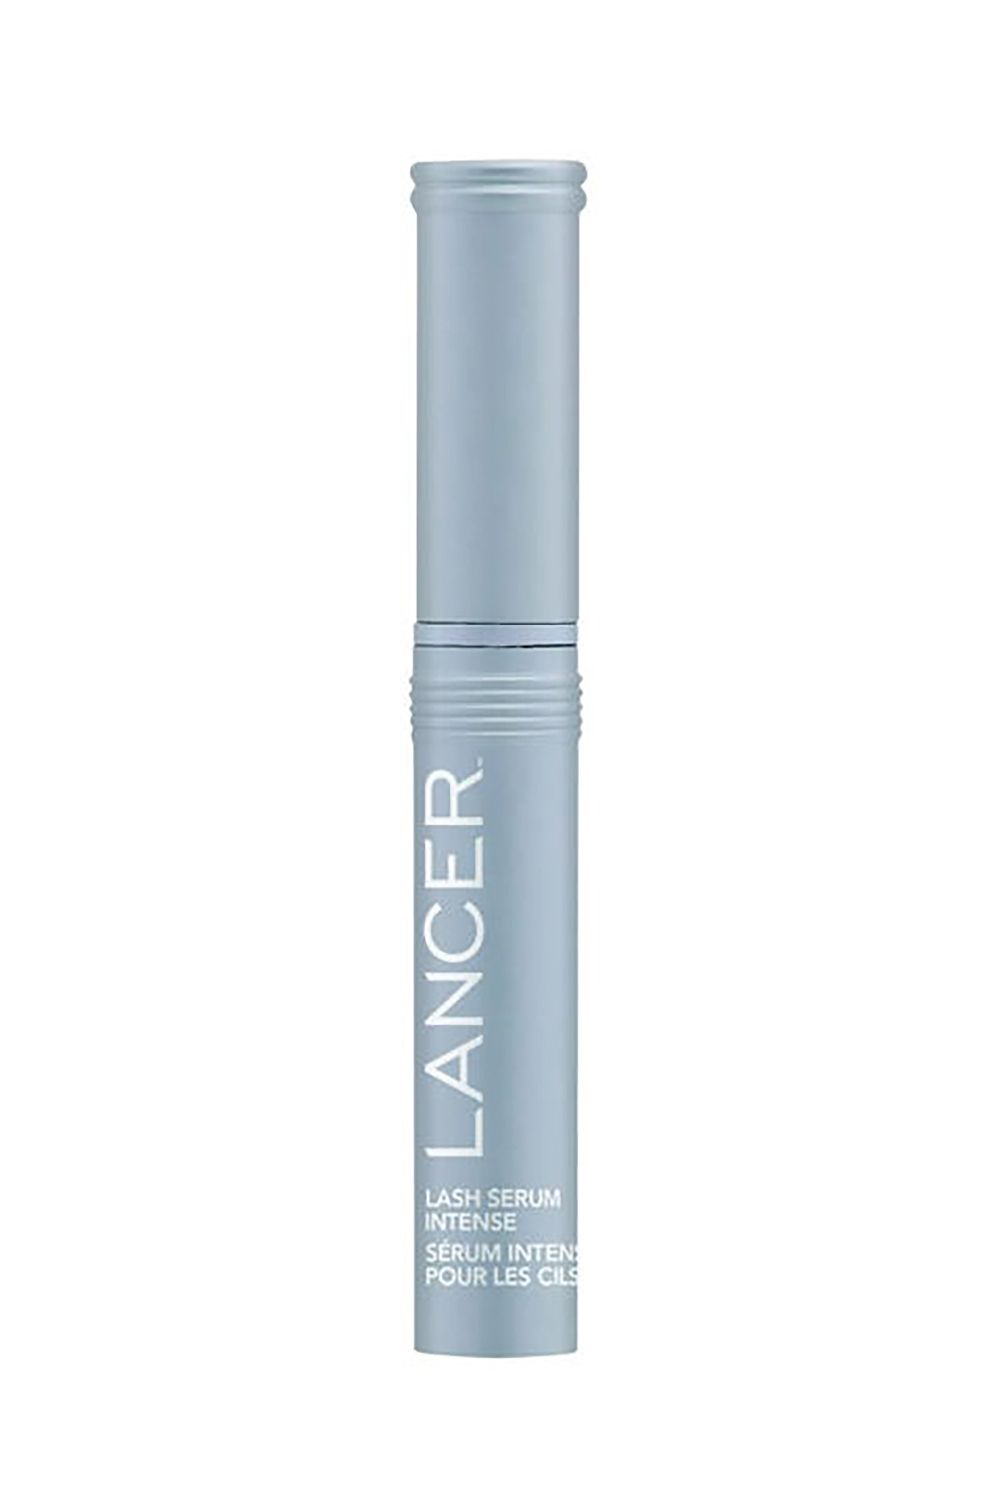 """<p>From the derm who nurses Hollywood's clearest-complected celebs comes this carefully concocted mix ofpolypeptides, biotin, and panthenol<span class=""""redactor-invisible-space"""" data-verified=""""redactor"""" data-redactor-tag=""""span"""" data-redactor-class=""""redactor-invisible-space"""">.</span></p><p><em data-redactor-tag=""""em"""" data-verified=""""redactor"""">Lancer, $150</em></p><p><strong data-redactor-tag=""""strong"""" data-verified=""""redactor"""">BUY IT:</strong><span class=""""redactor-invisible-space"""" data-verified=""""redactor"""" data-redactor-tag=""""span"""" data-redactor-class=""""redactor-invisible-space""""><strong data-redactor-tag=""""strong"""" data-verified=""""redactor""""><a href=""""https://www.lancerskincare.com/lancer-lash/"""" target=""""_blank"""" data-tracking-id=""""recirc-text-link"""">lancerskincare.com</a>.</strong></span></p>"""